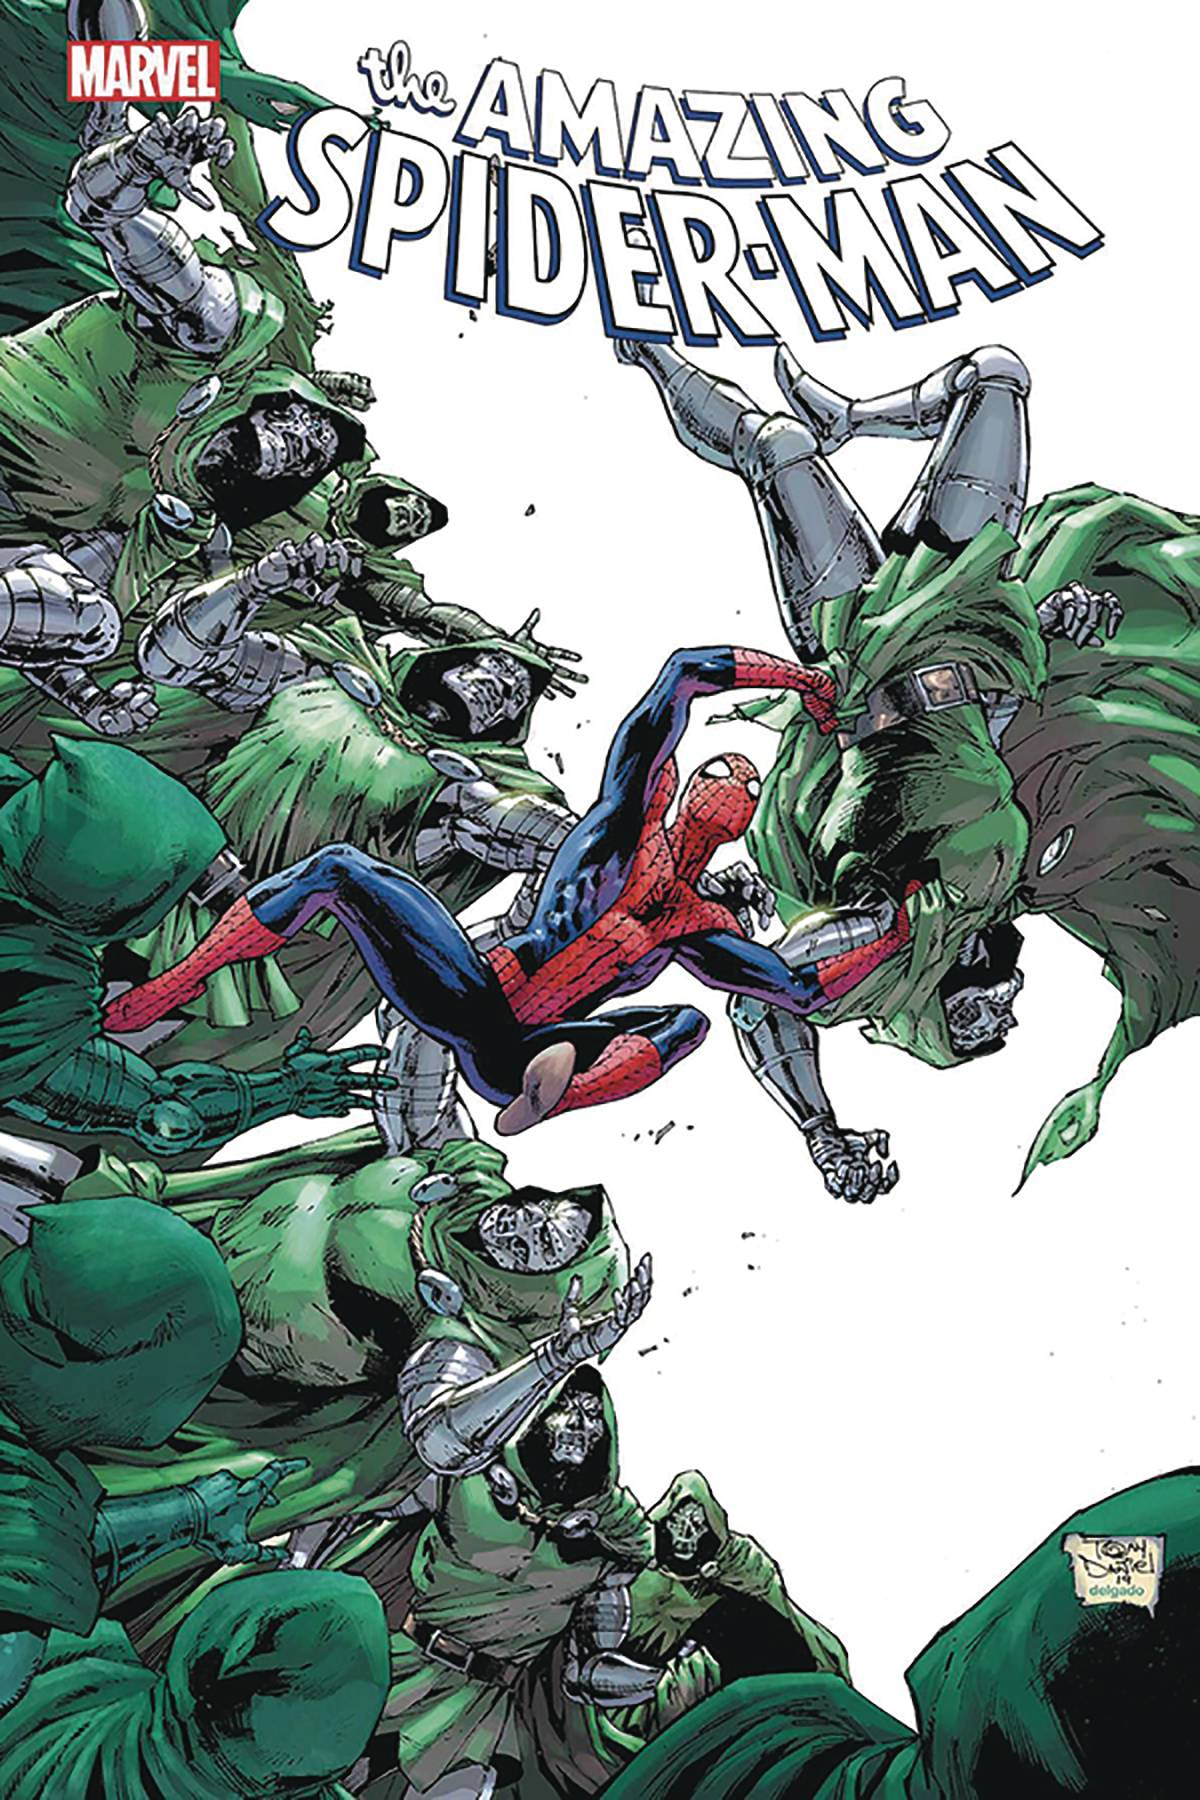 DF AMAZING SPIDER-MAN #35 SGN SPENCER